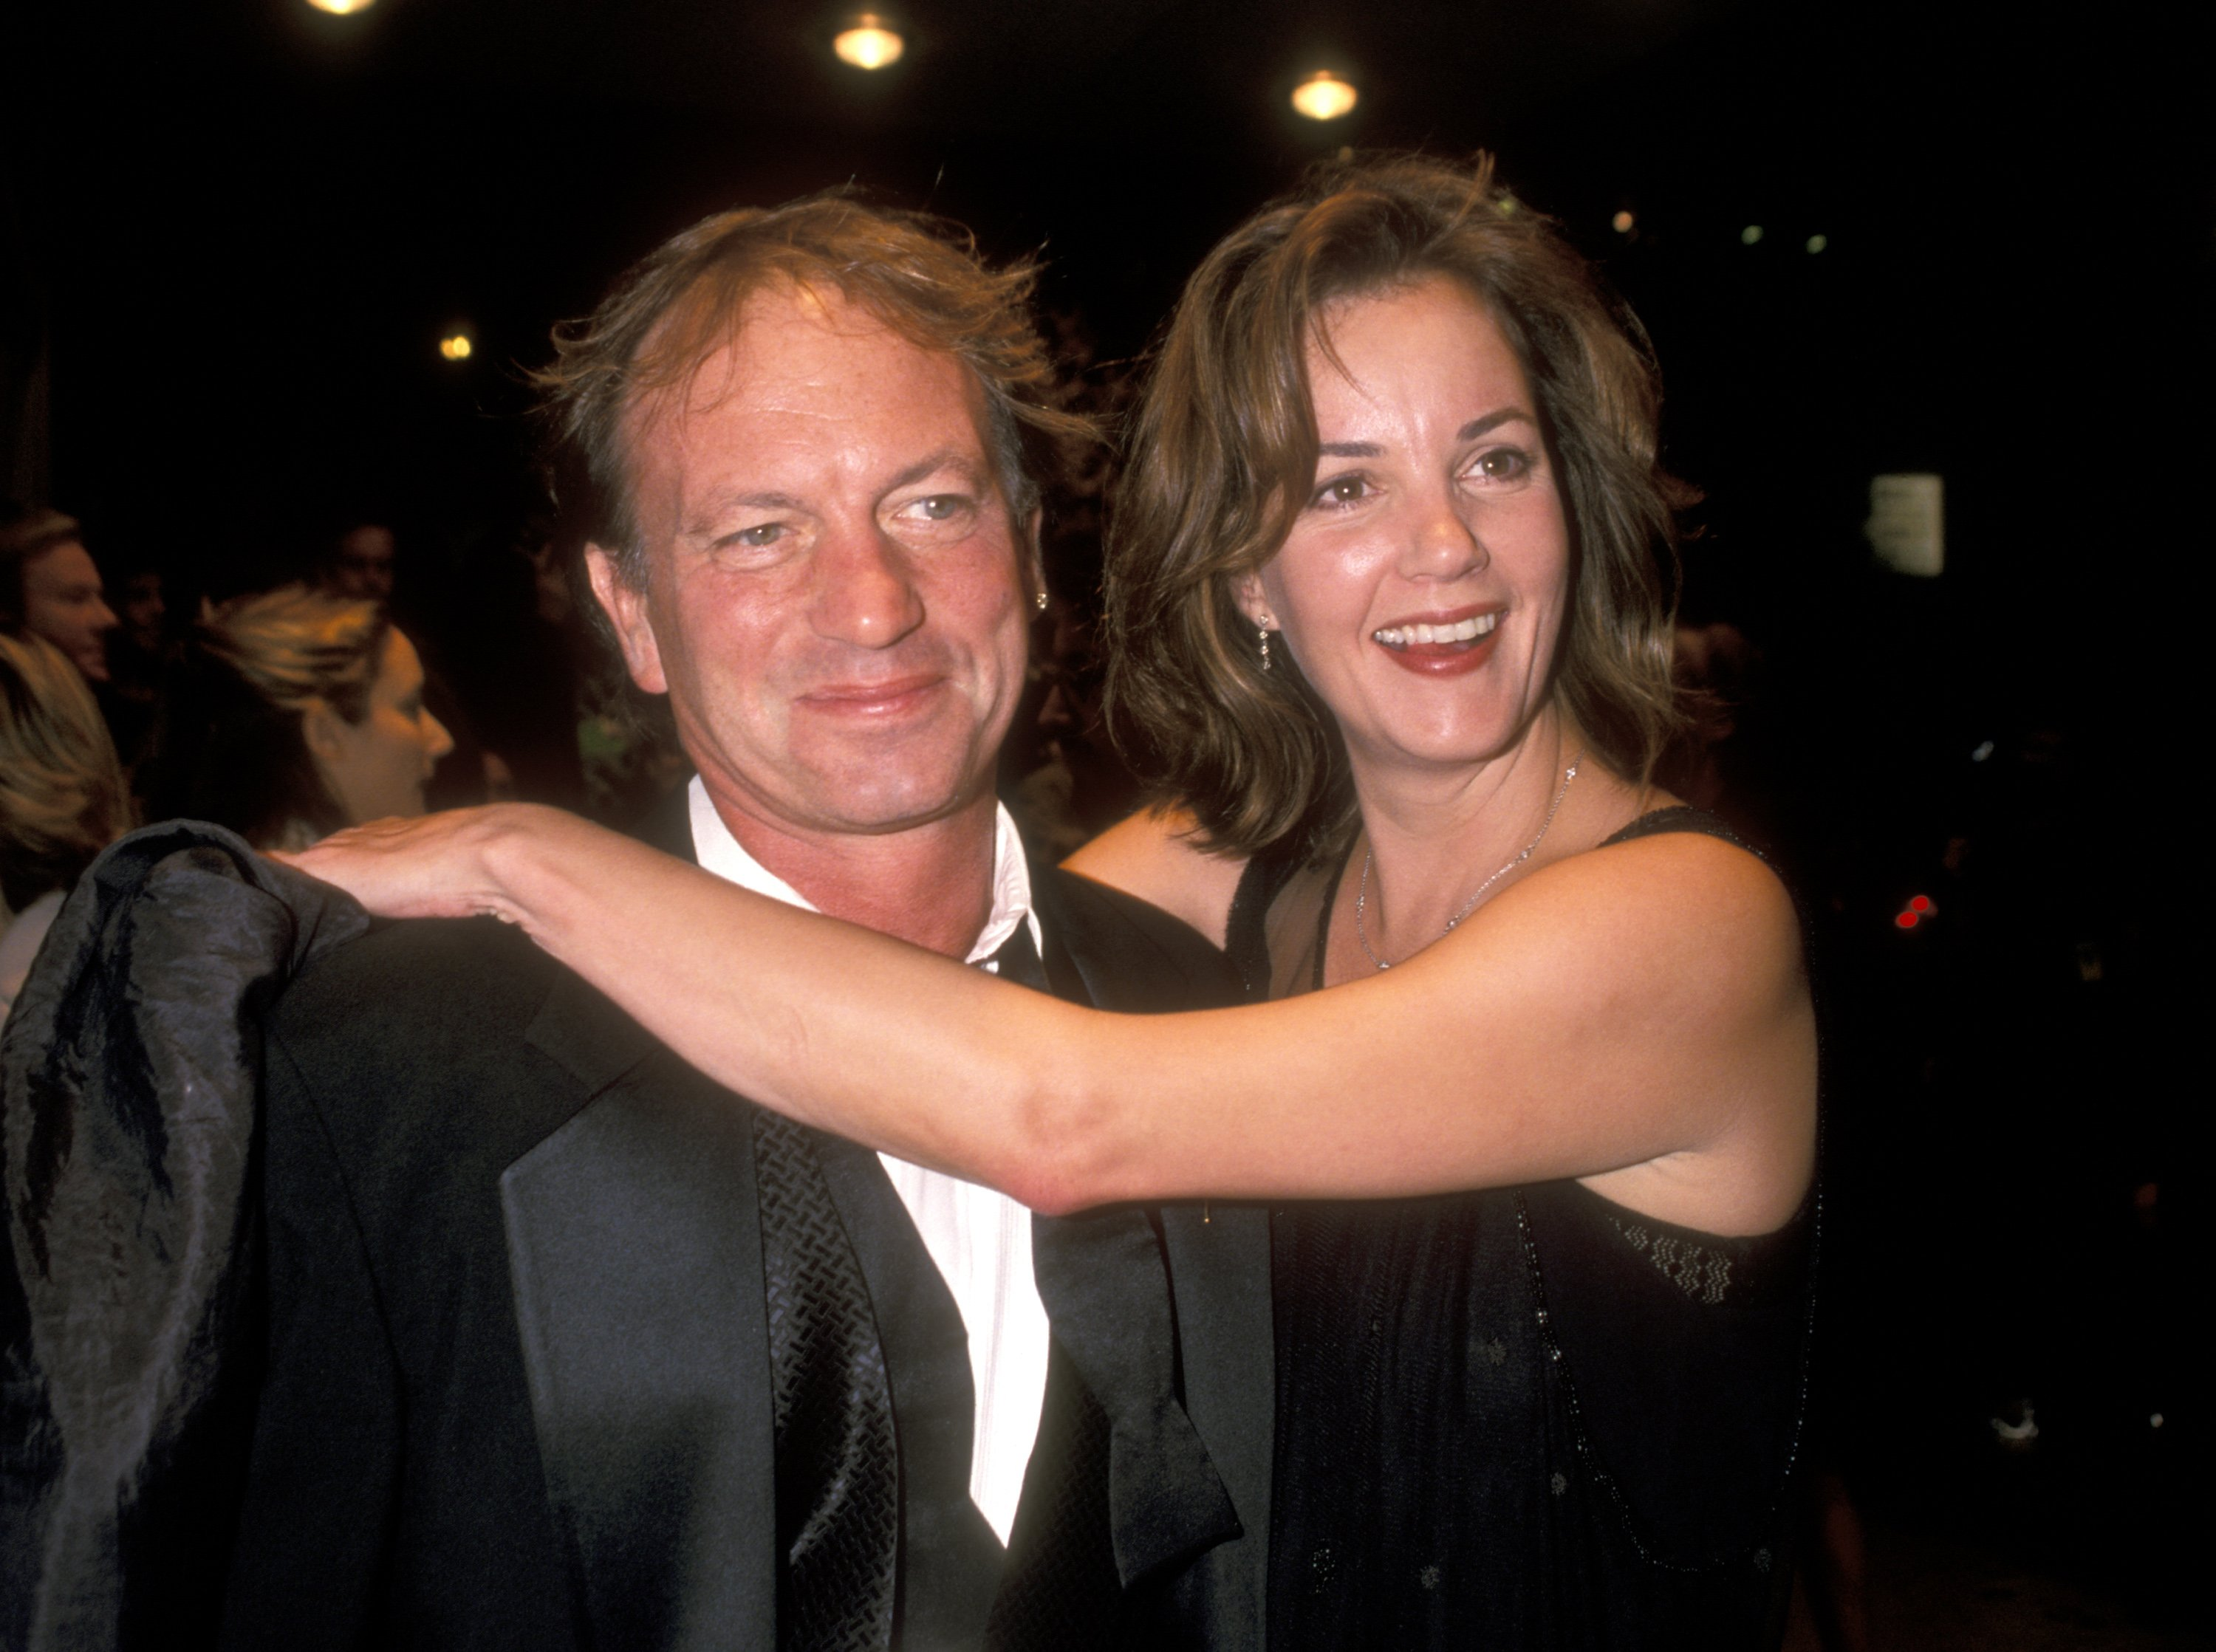 Margaret Colin and Justin Deas on September 23, 1999, in New York City | Photo: Getty Images